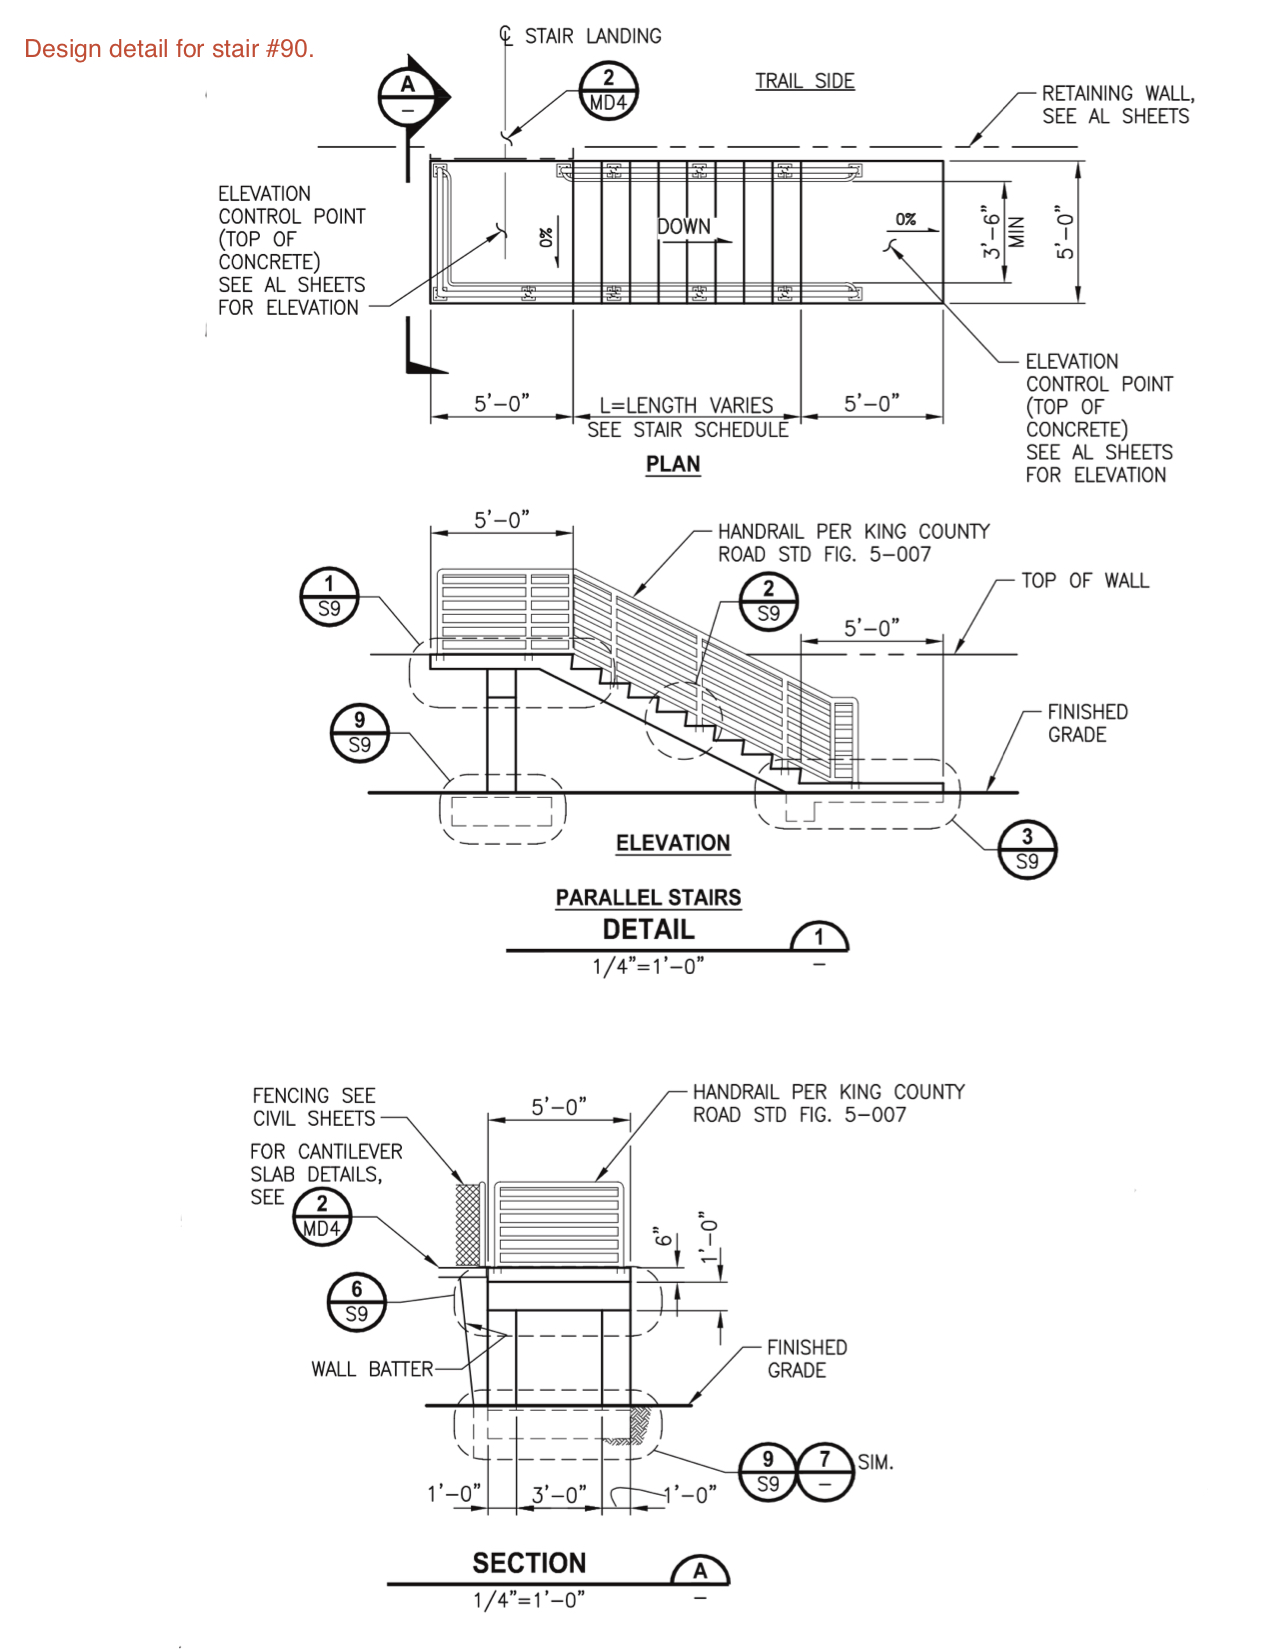 design detail for stairs